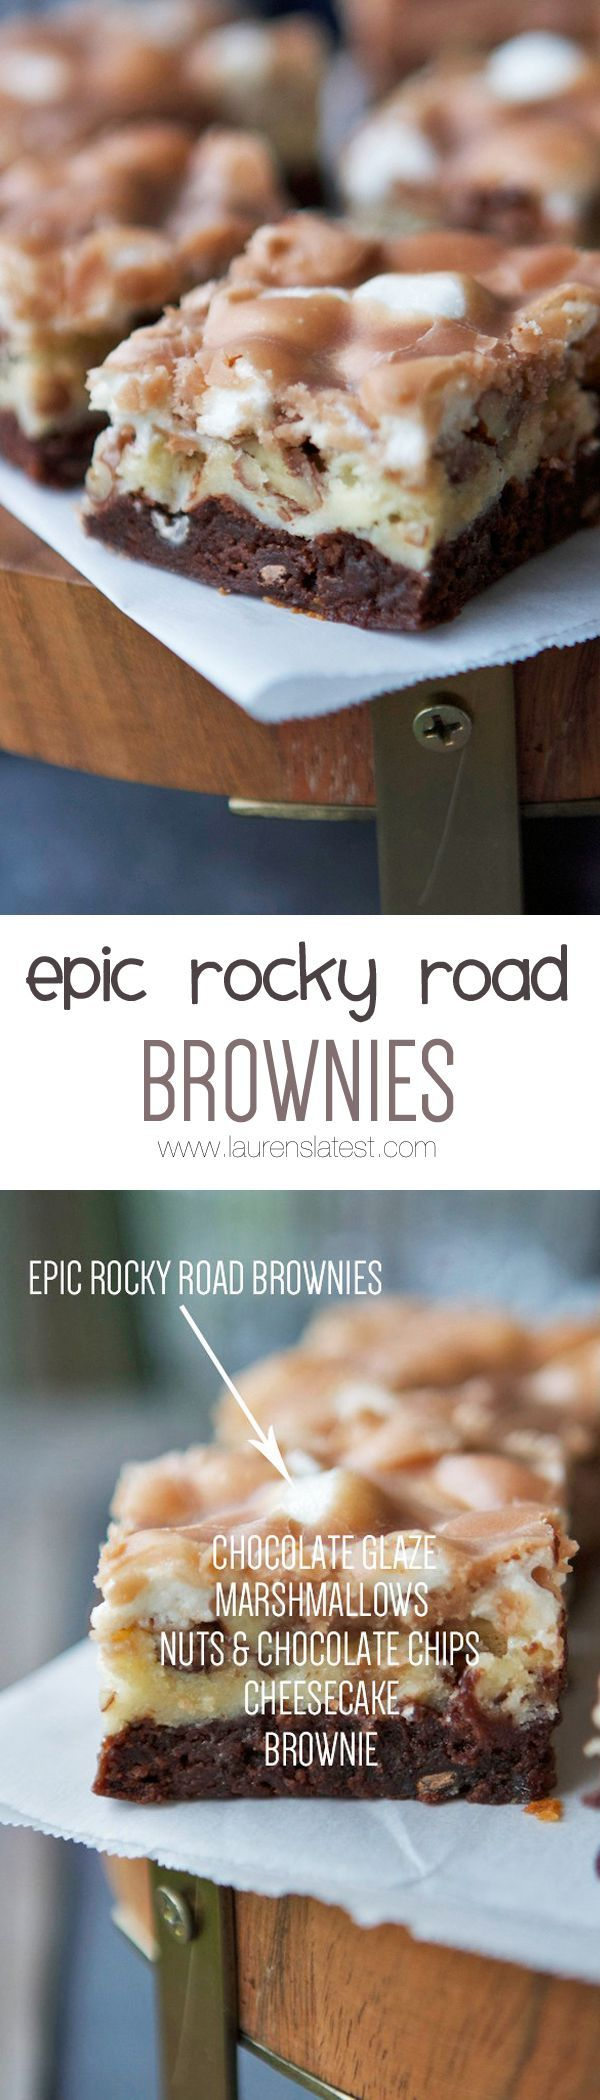 Epic Rocky Road Brownies